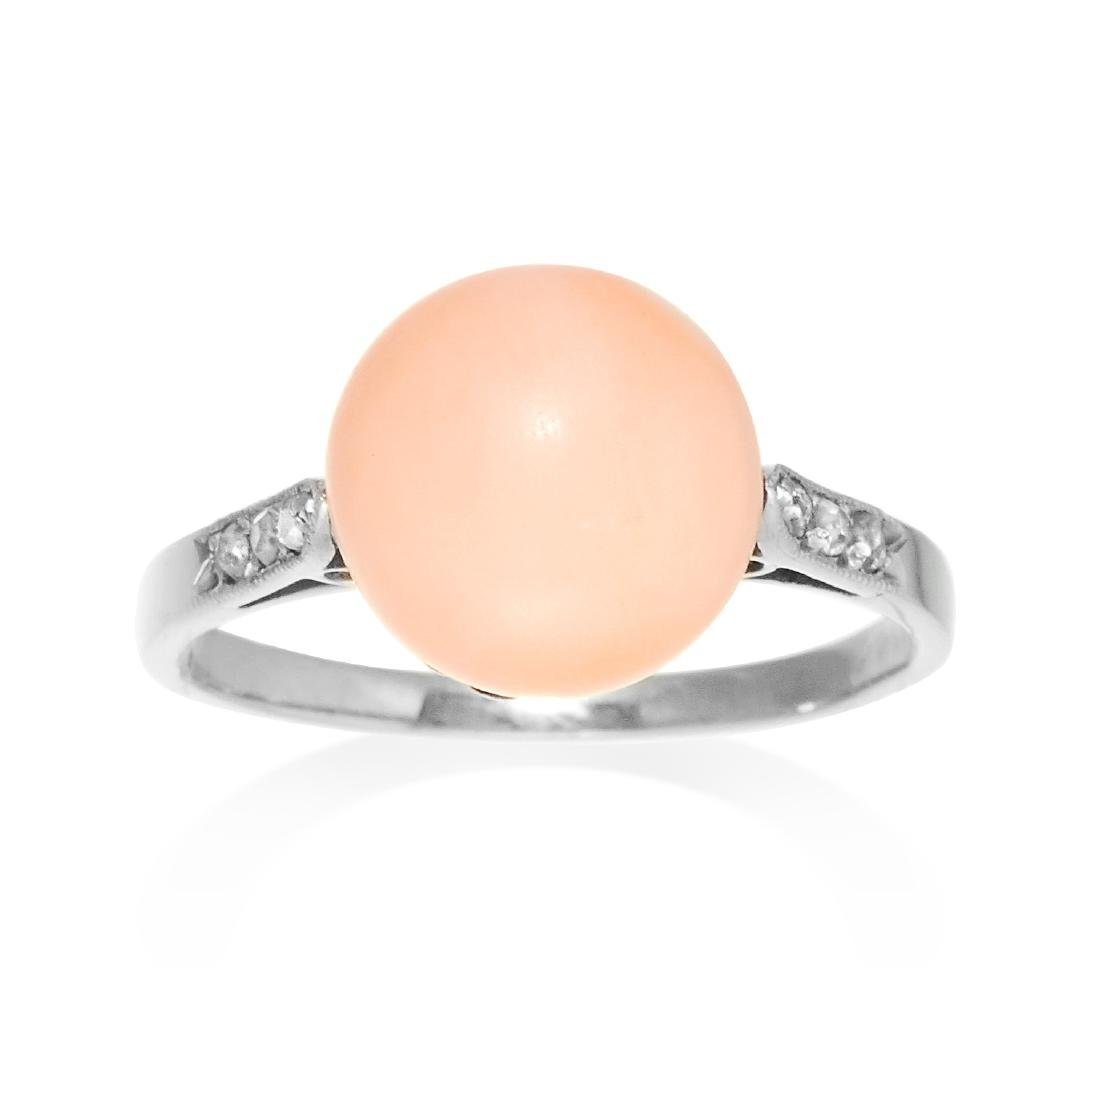 A CORAL AND DIAMOND DRESS RING in gold or platinum, set